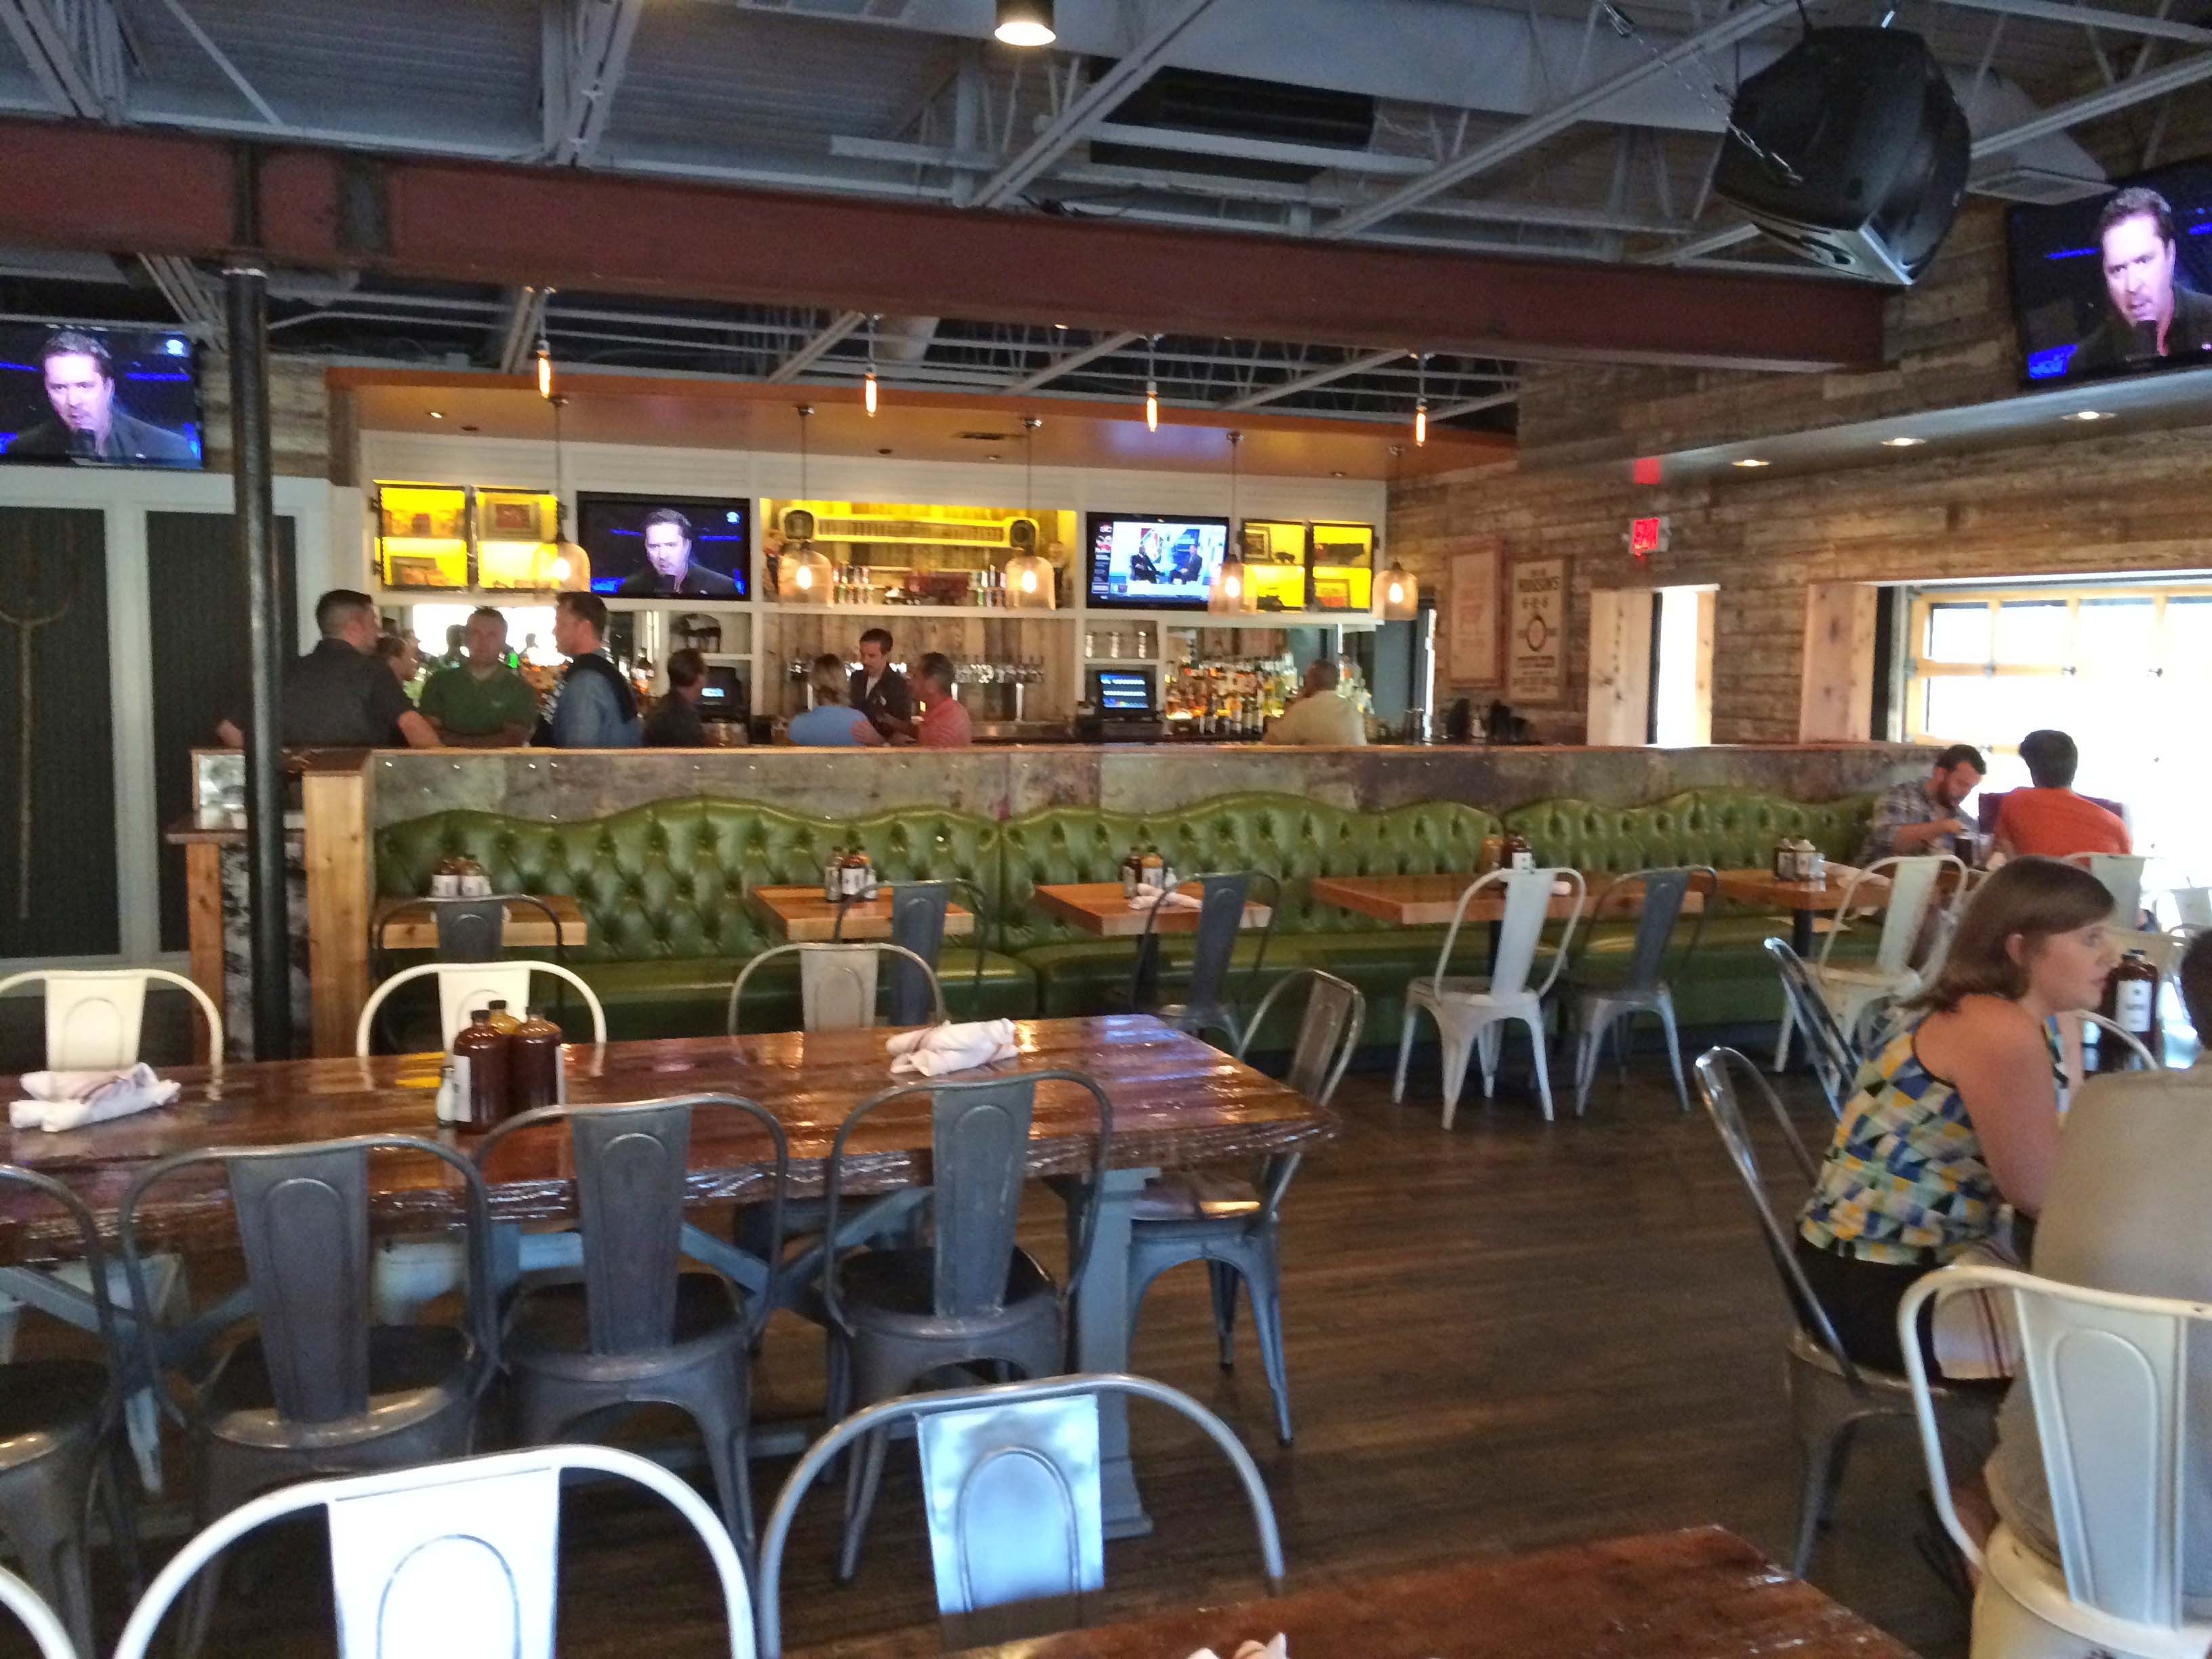 southern bbq restaurant interior - Google Search   Project ...